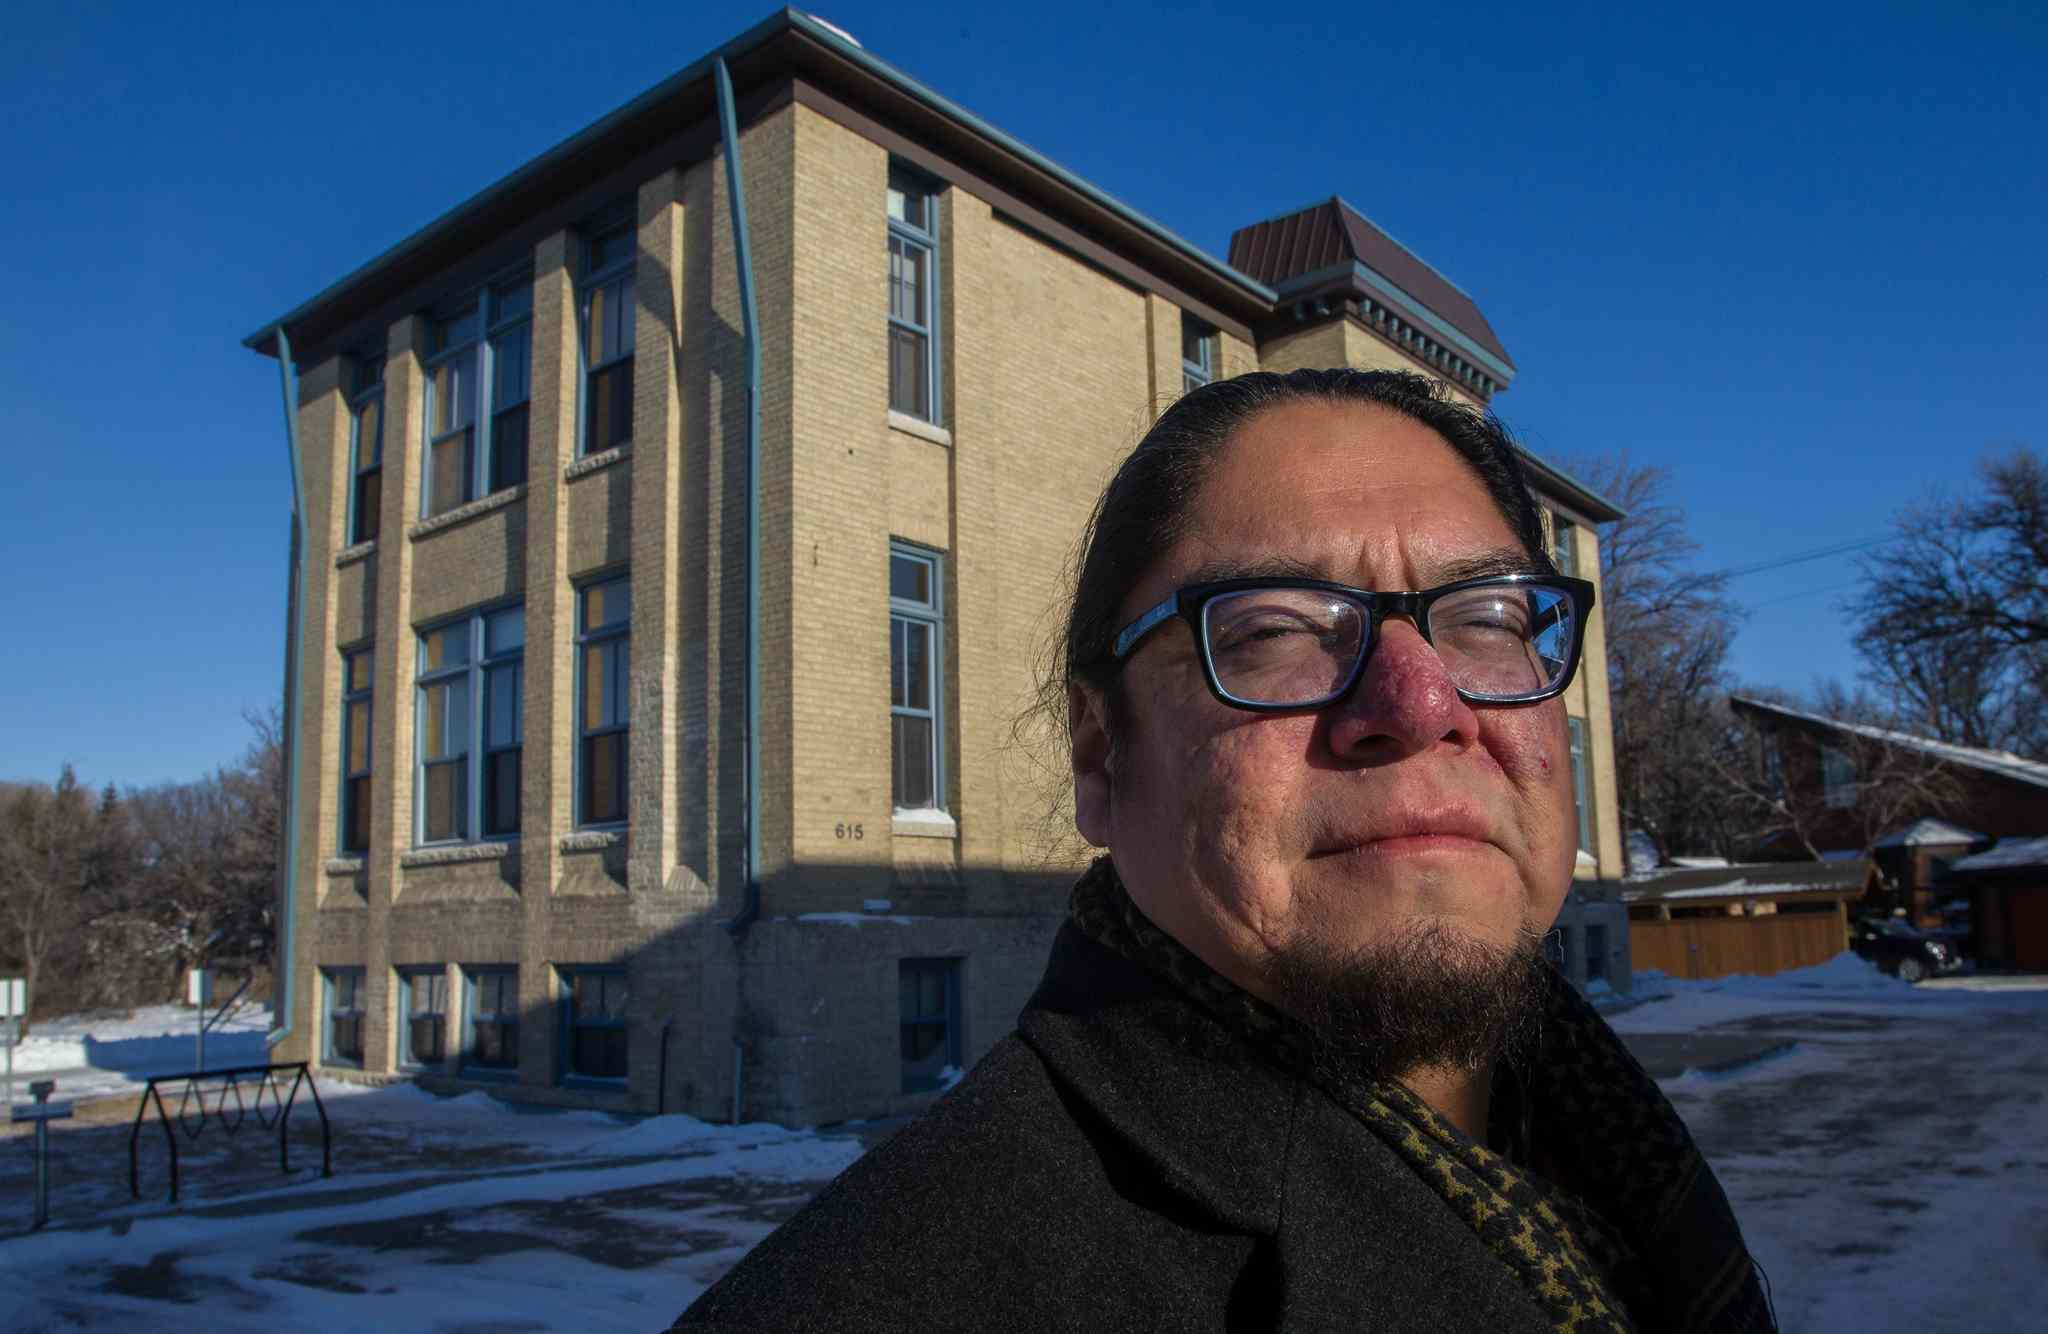 Maeengan Linklater, in front of the former site of the Assiniboine Residential School, formally recognized as one of Canada's Historic Places, not for being a residential school but for its role as the Julia Clark School, which featured prominantly in the early development of the city's child welfare system. It is now houses the Canadian Centre for Child Protection.